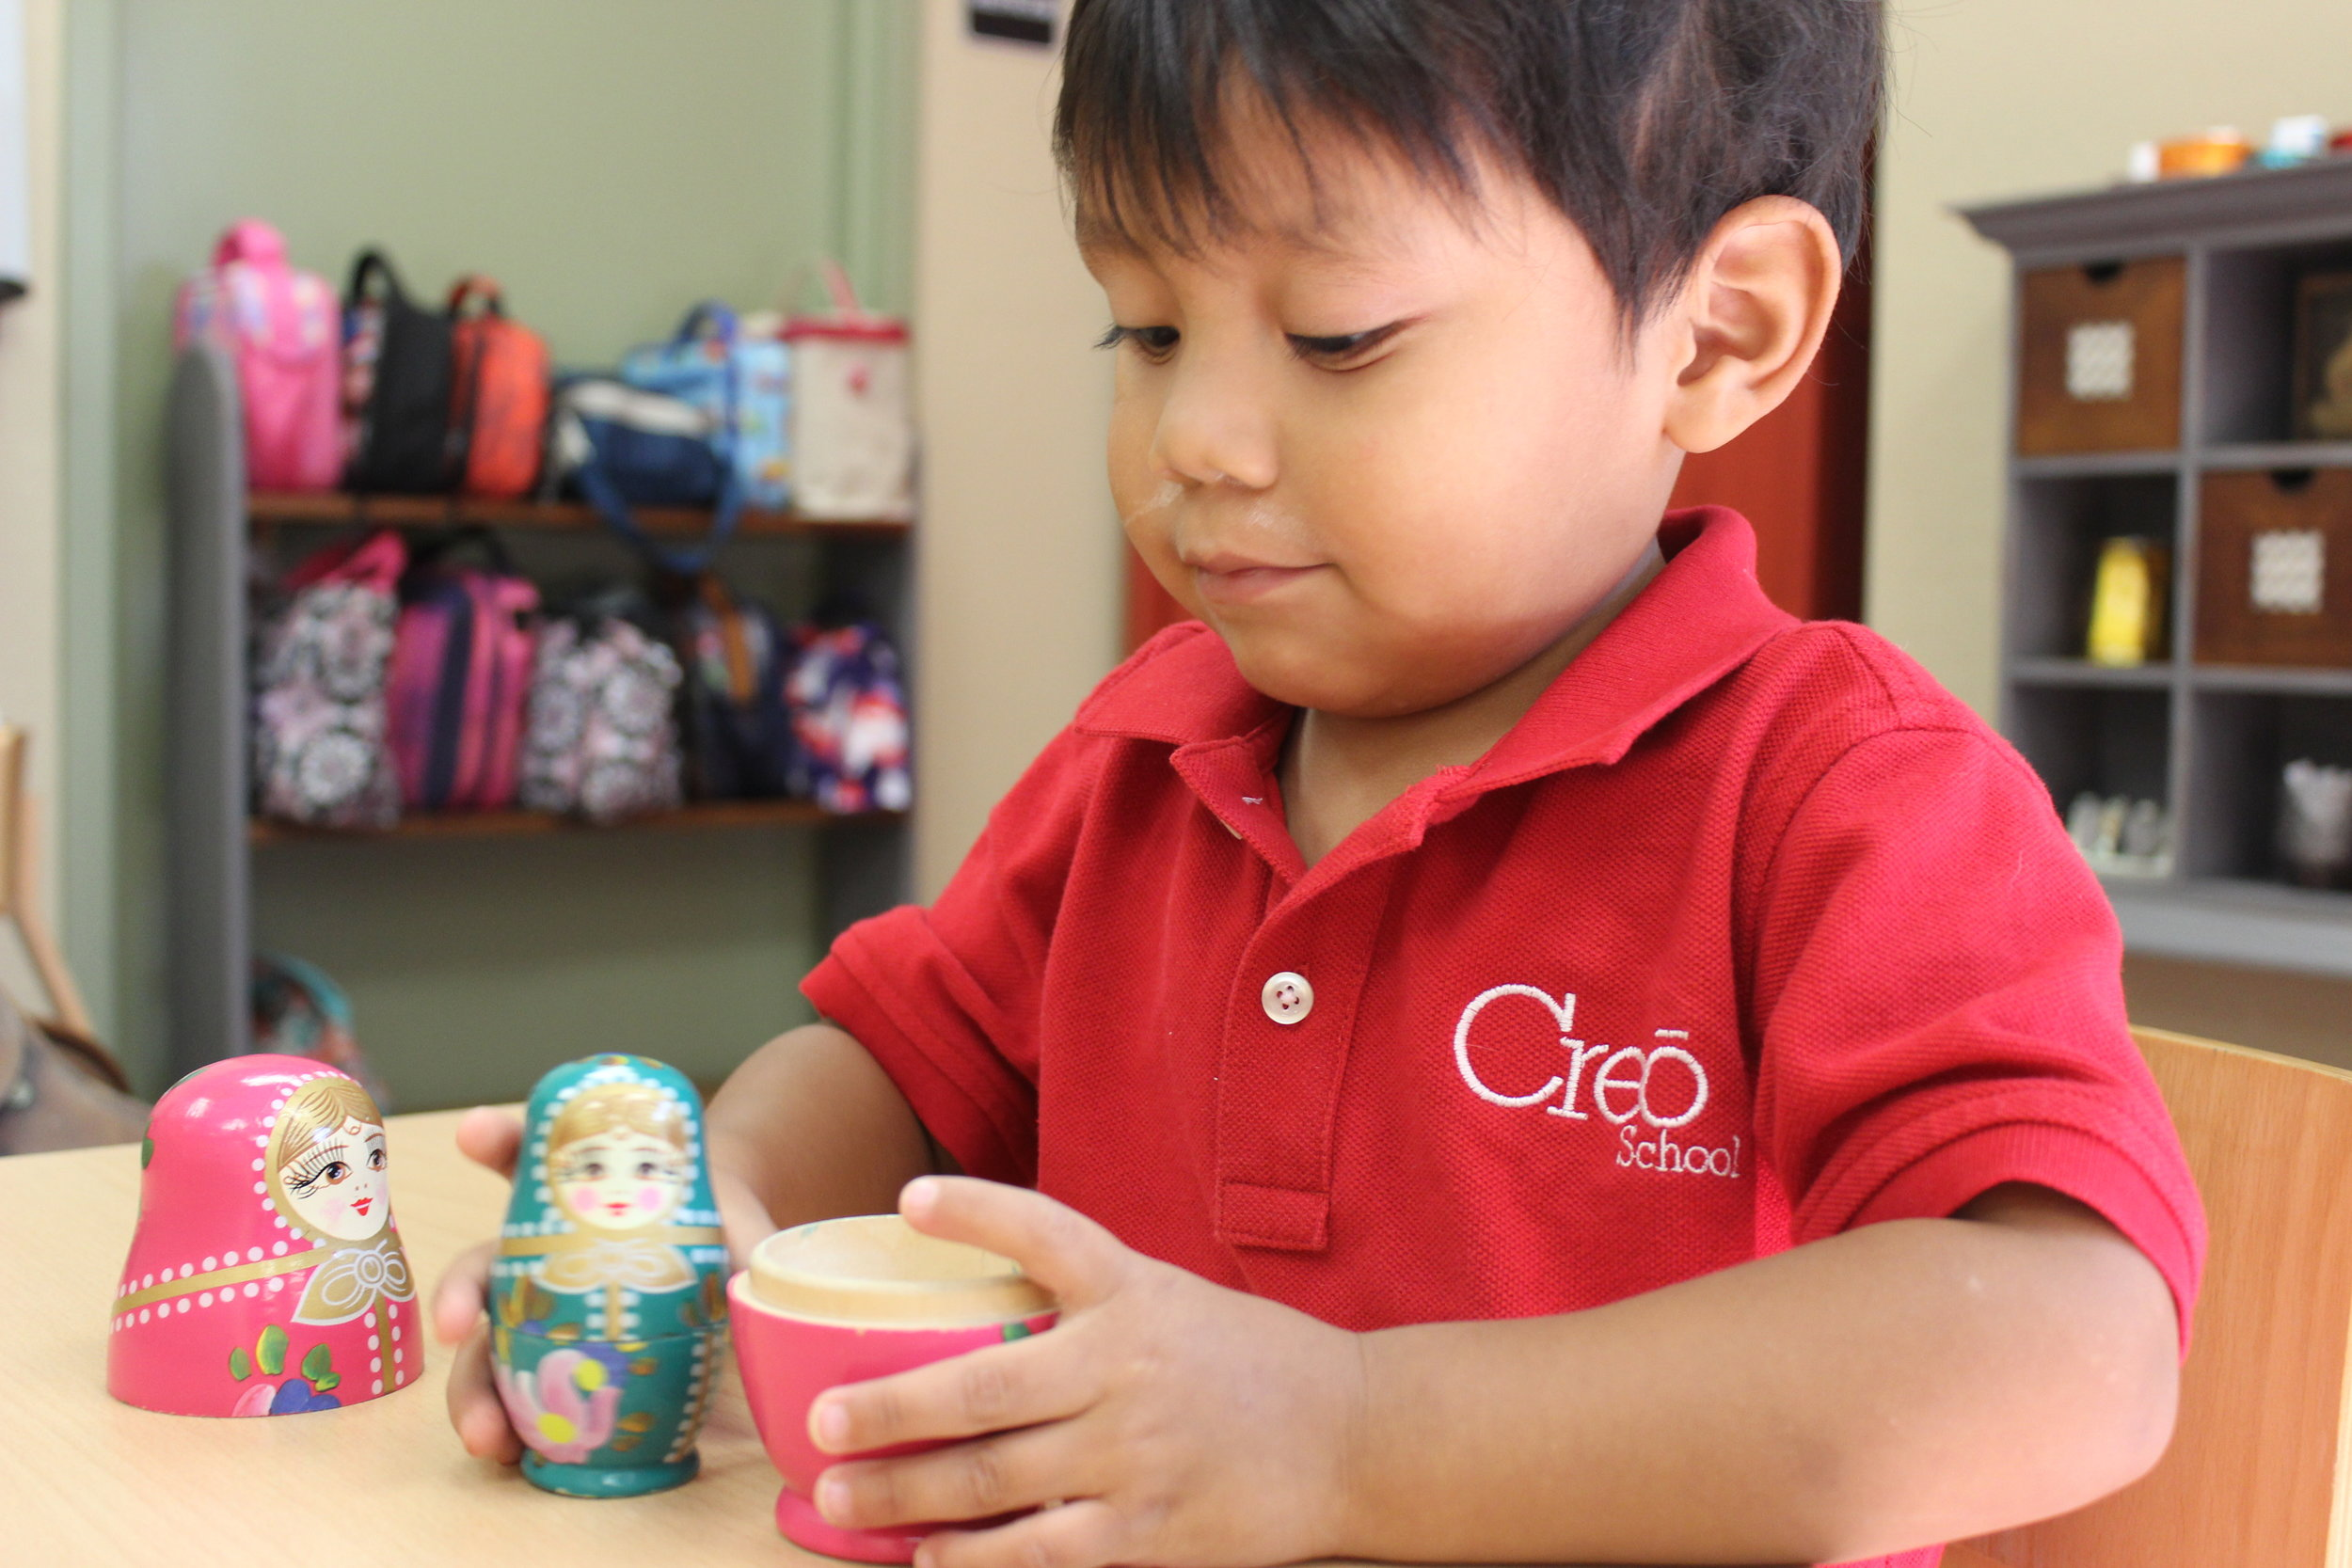 Russian Nesting Dolls are a fun way to develop concentration while learning a bit about culture.